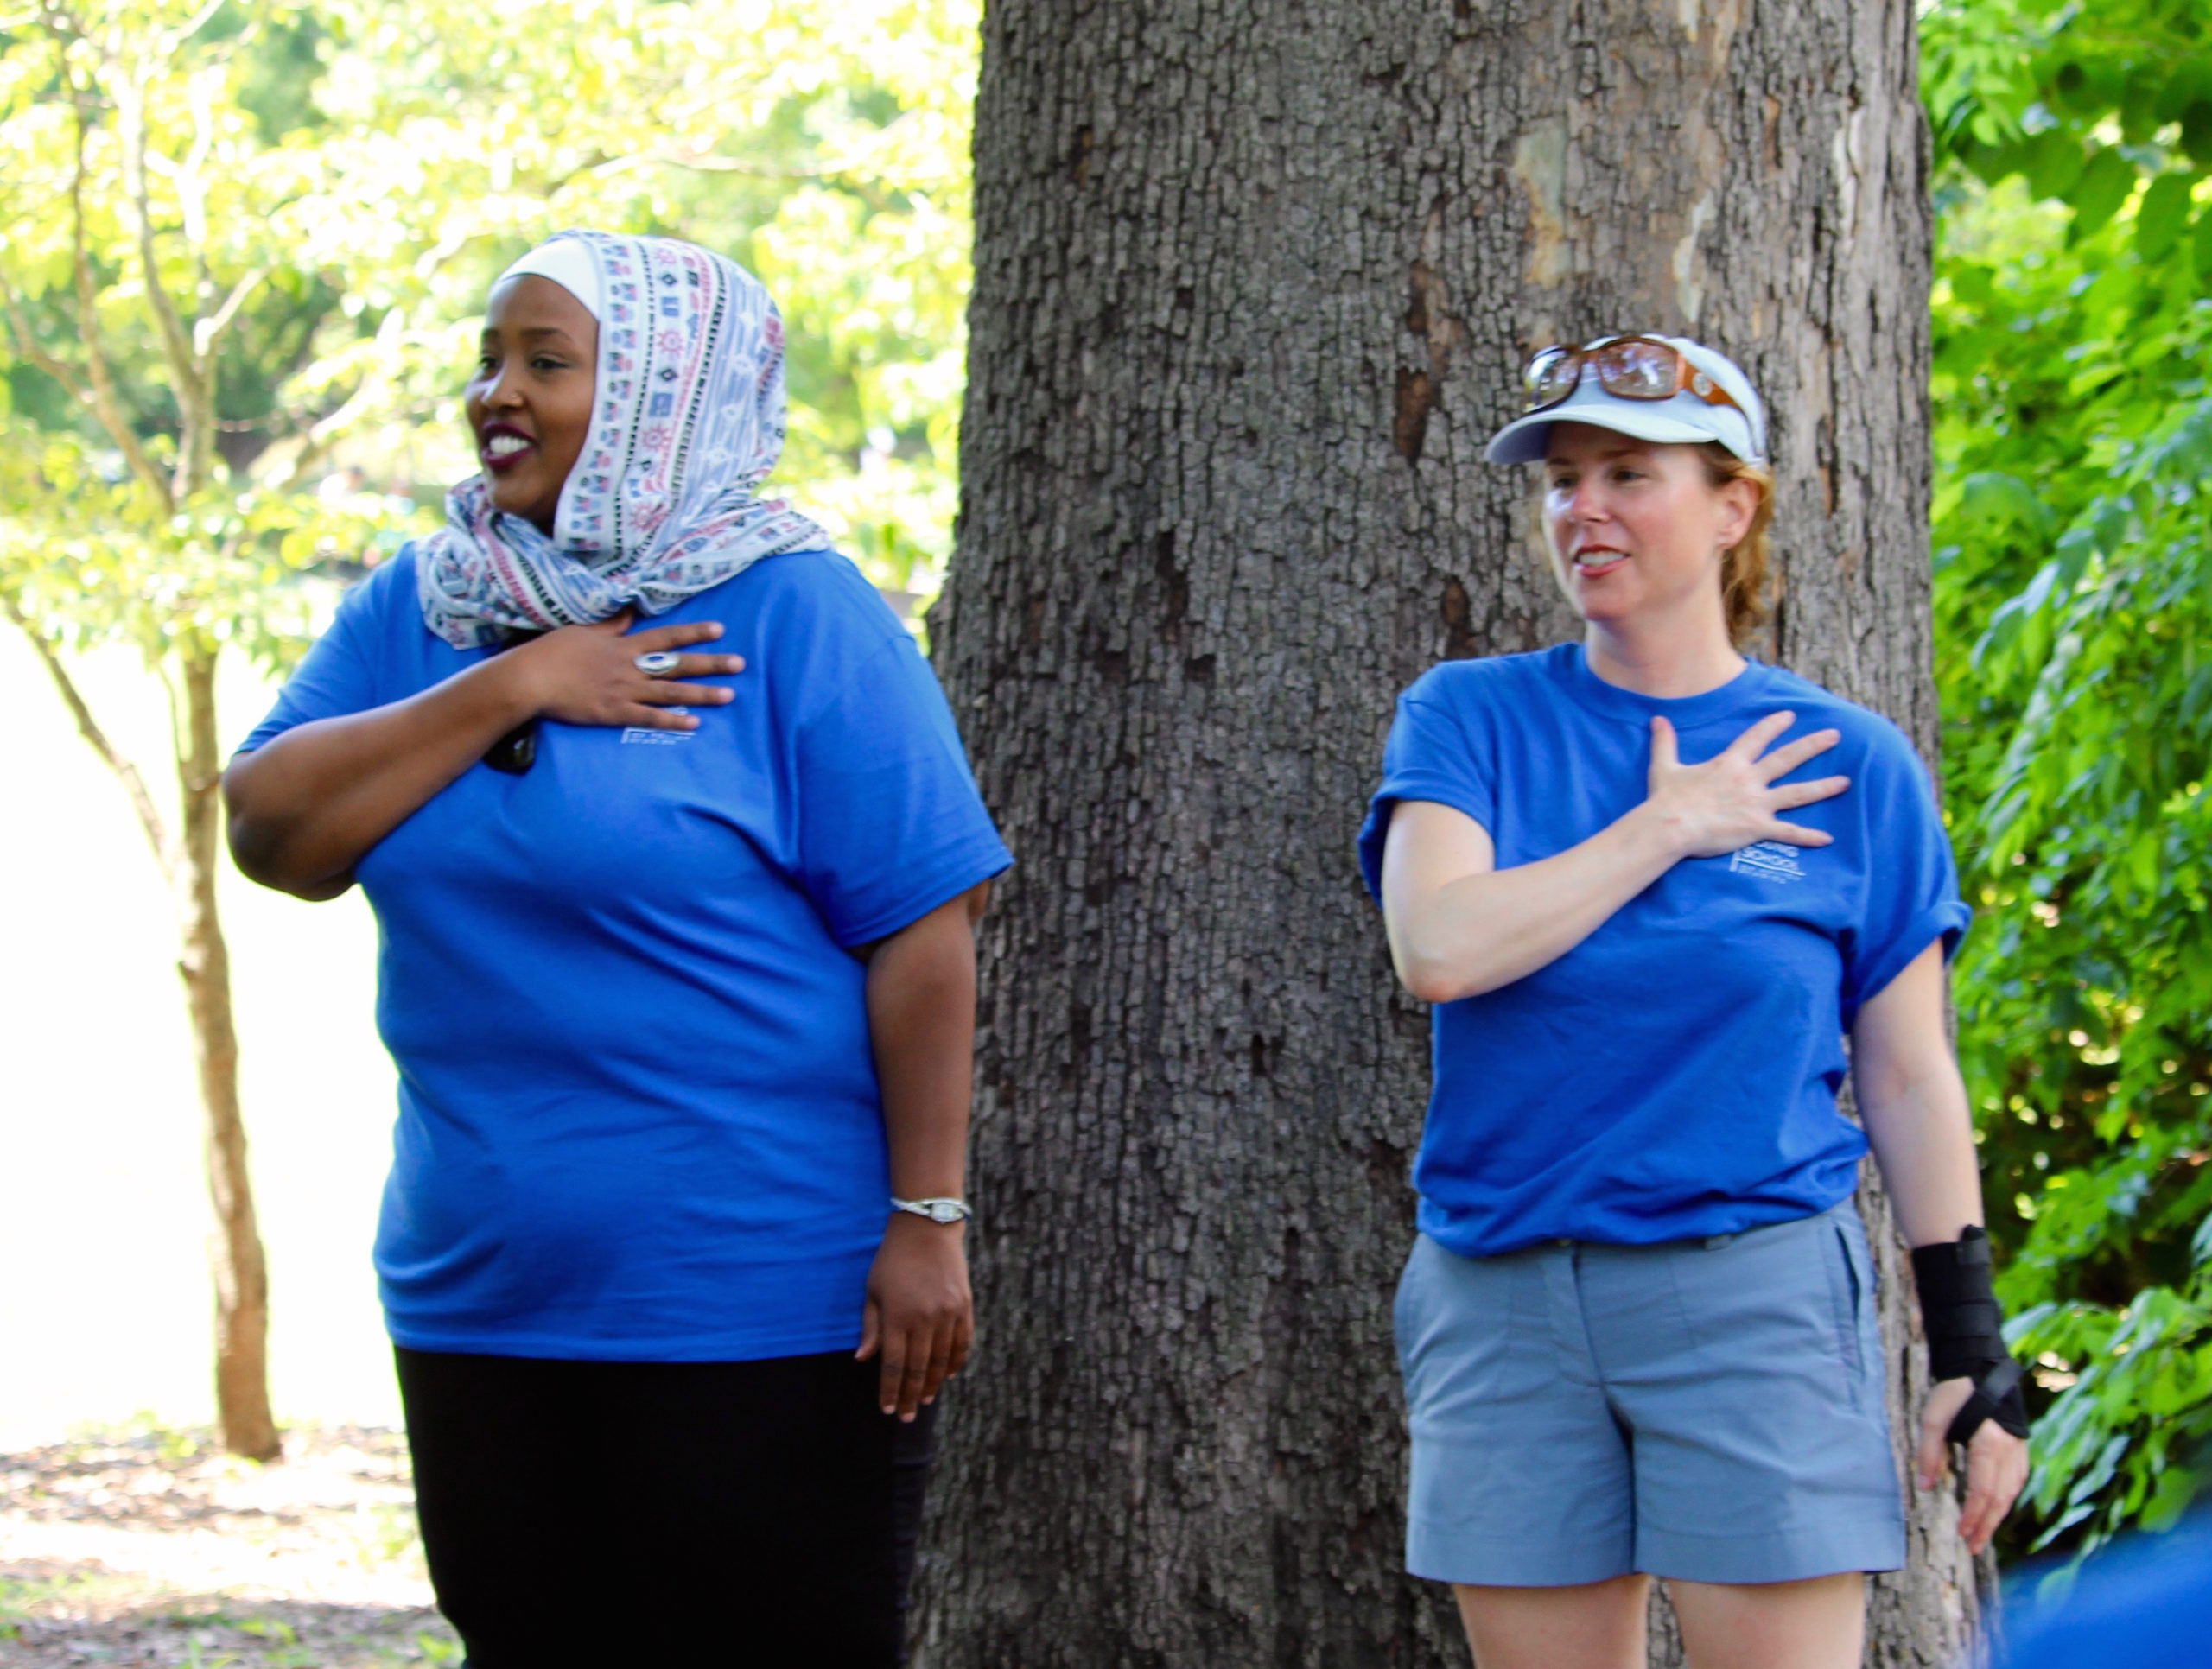 an African woman with a headscarf and a white woman wearing a ball cap are both crossing their hearts, each are wearing blue t-shirts